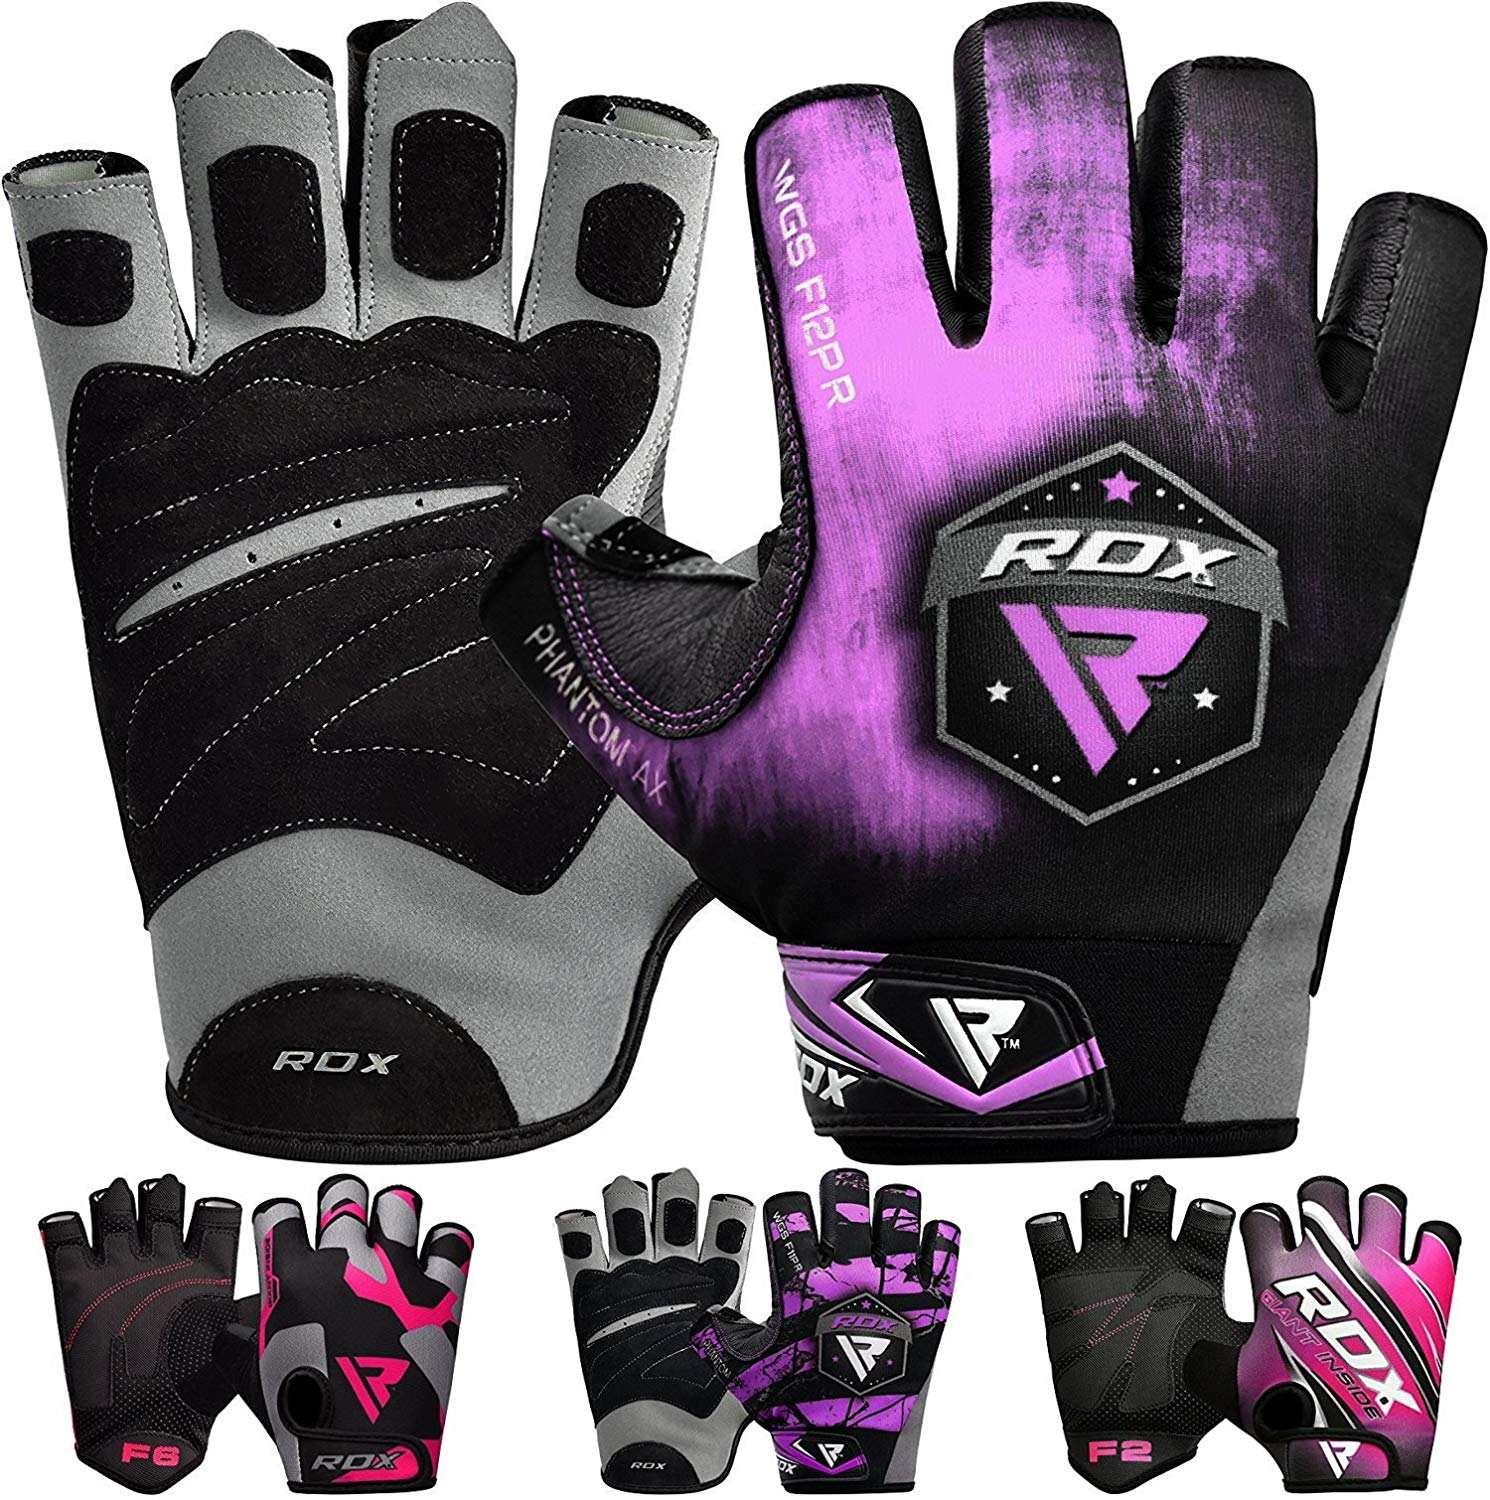 Best Weightlifting Gloves Review Half Finger Gloves Review January